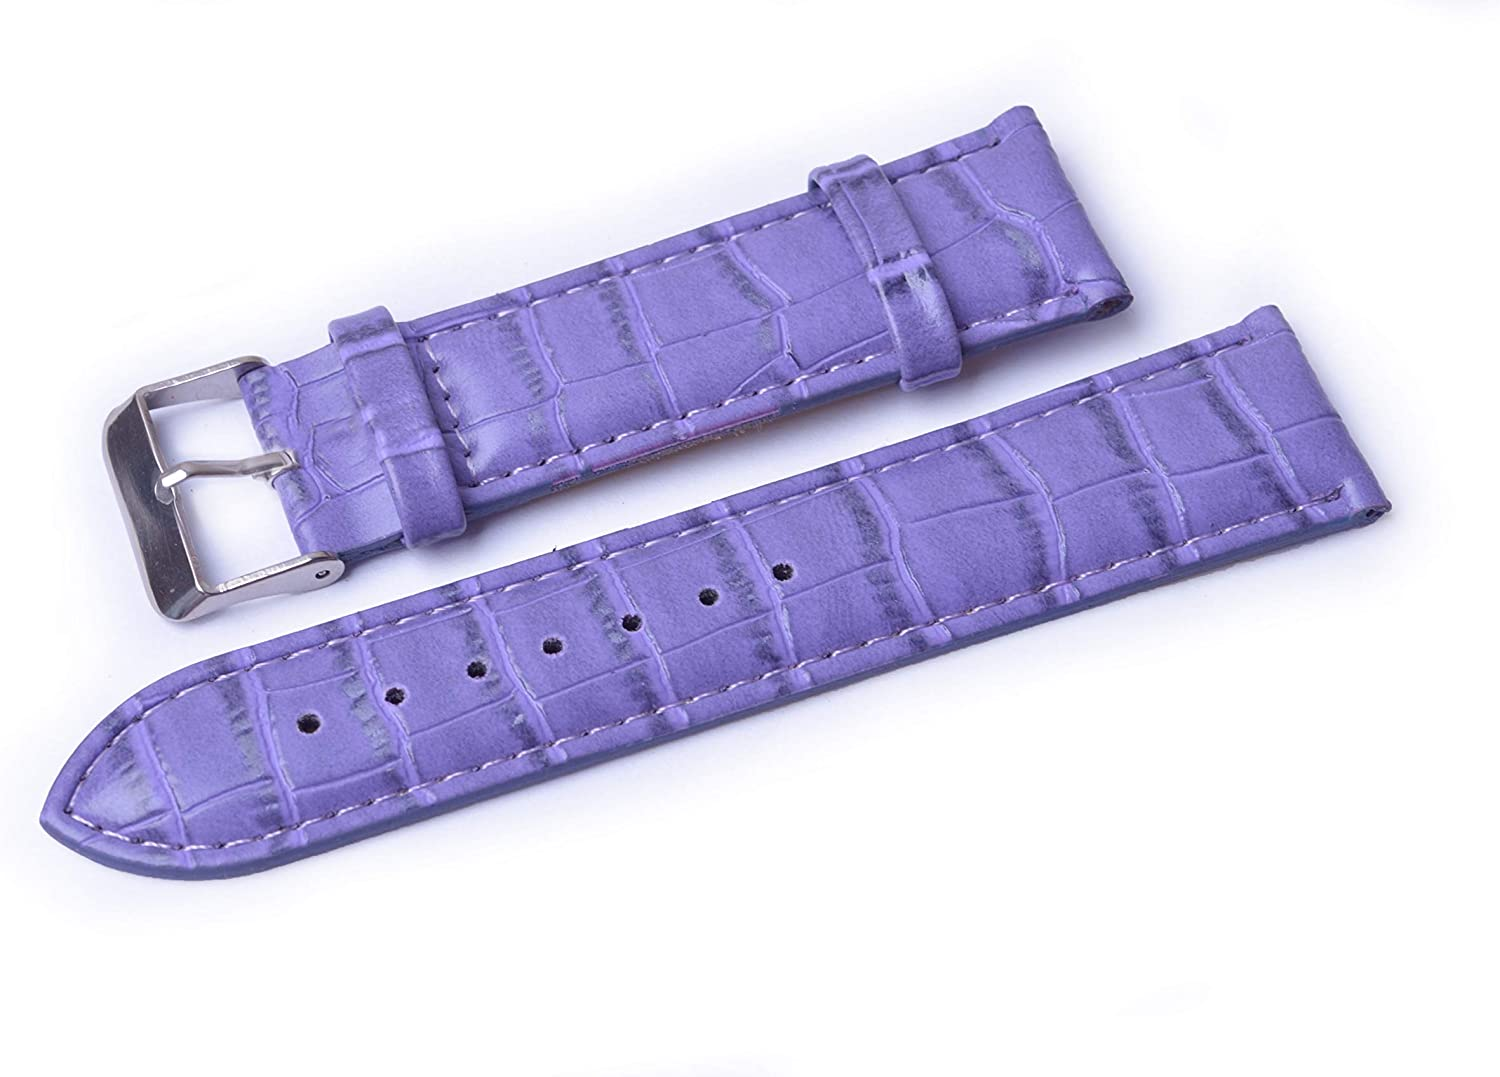 WENTO PU Leather 2021 model Watch Bands Replacement Grain Padded shipfree Alligator